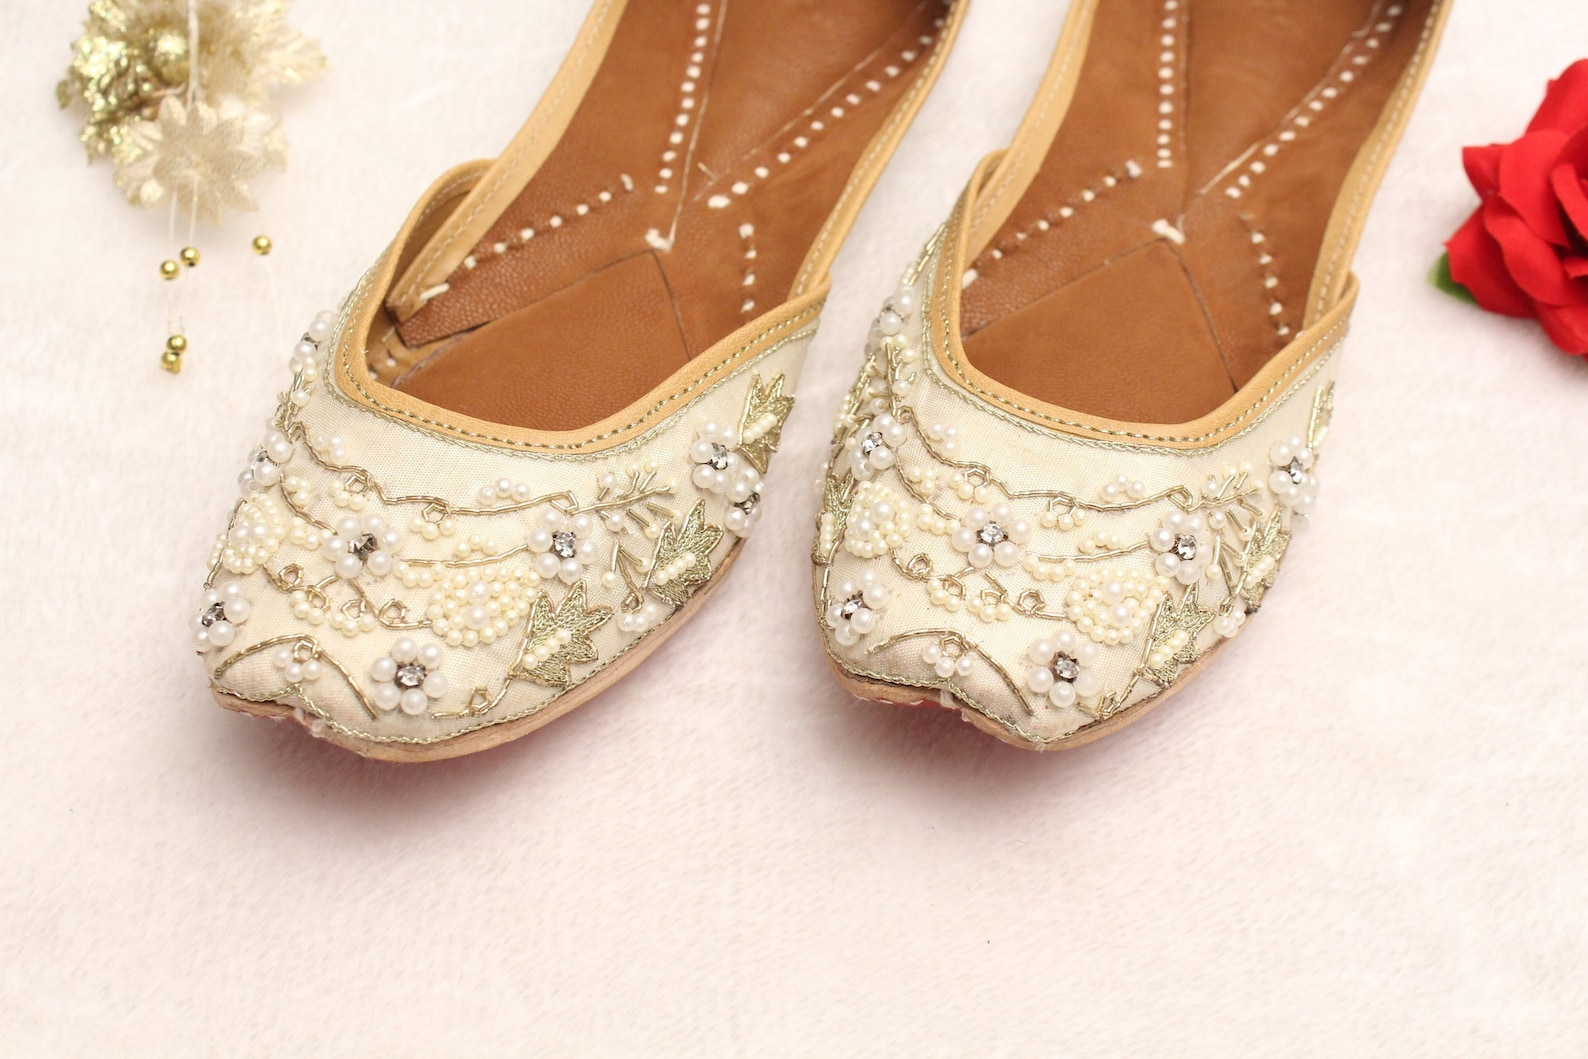 women bridal wedding shoes/indian gold white pearl shoes/gold wedding flats/gold ballet flats/jasmine khussa shoes/rani shoes us